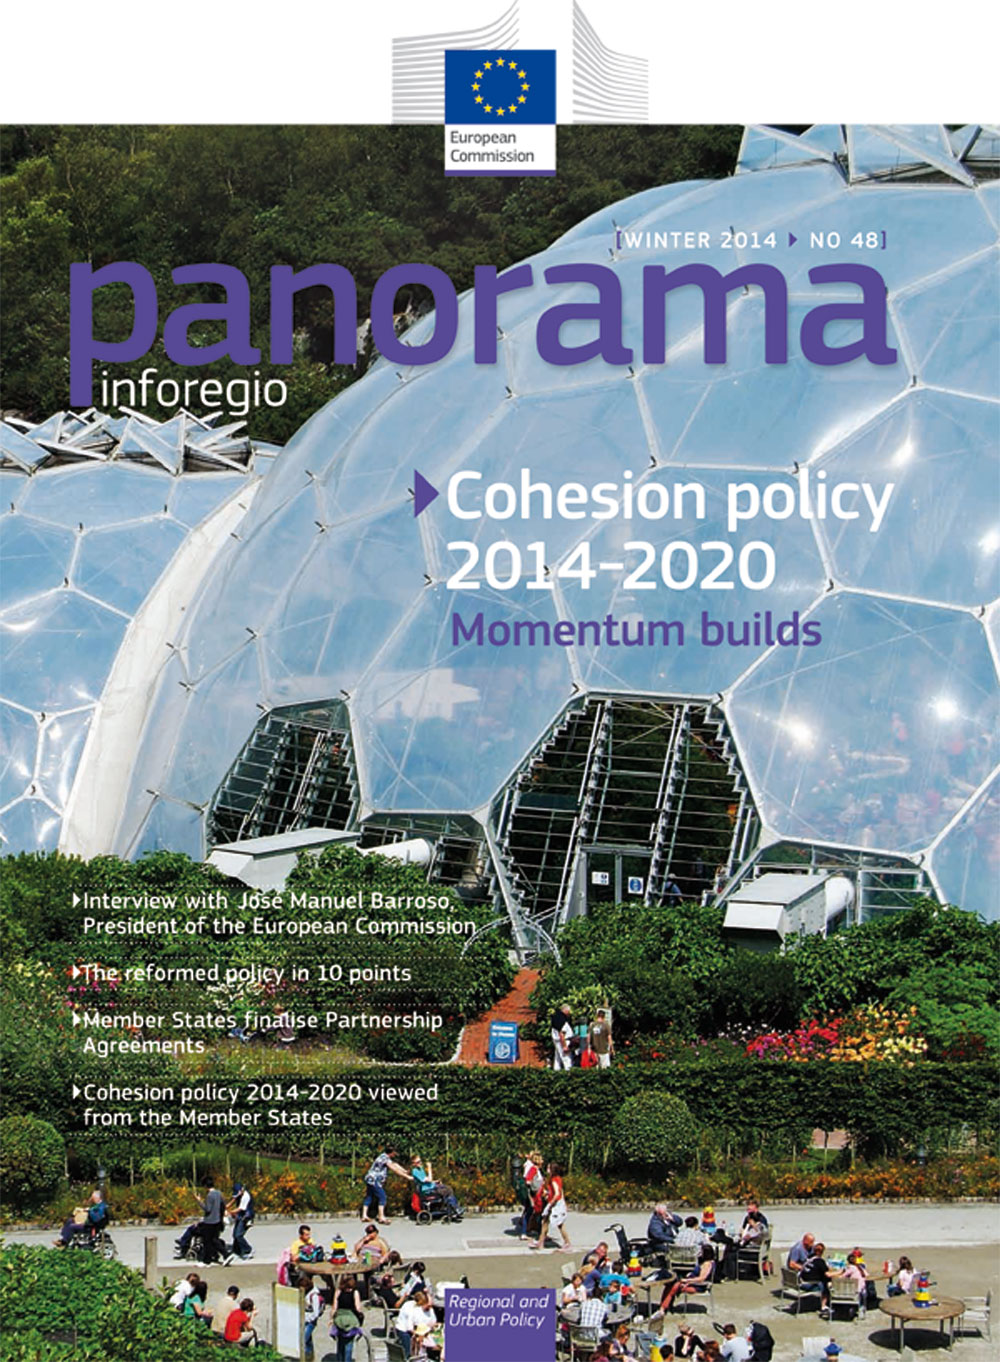 PANORAMA - The Magazine for the actors of regional development: Reformed Cohesion Policy 2014-2020